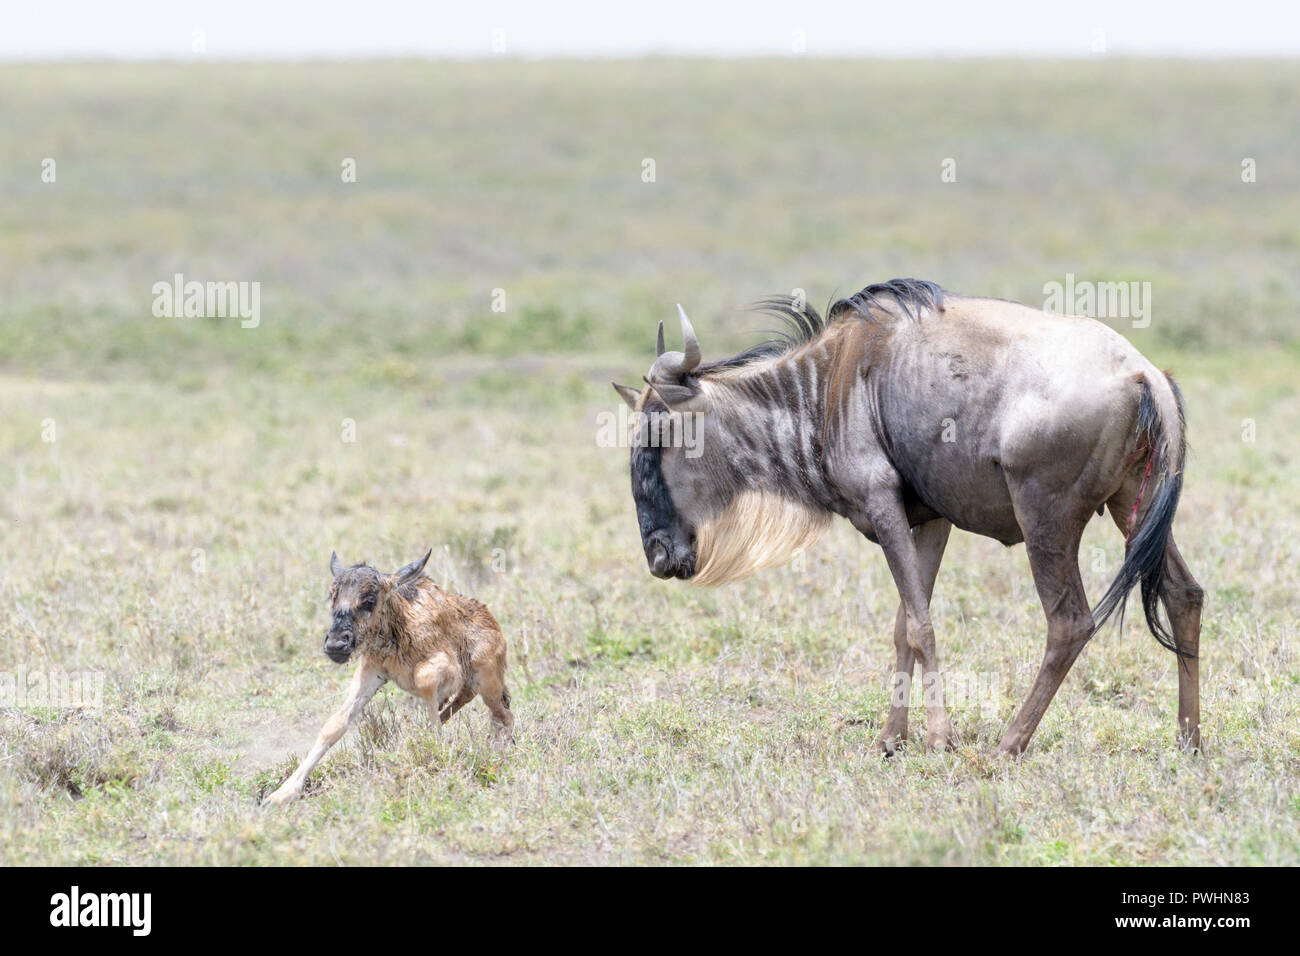 Blue Wildebeest (Connochaetes taurinus) mother with a new born baby trying to stand, Ngorongoro conservation area, Tanzania. - Stock Image